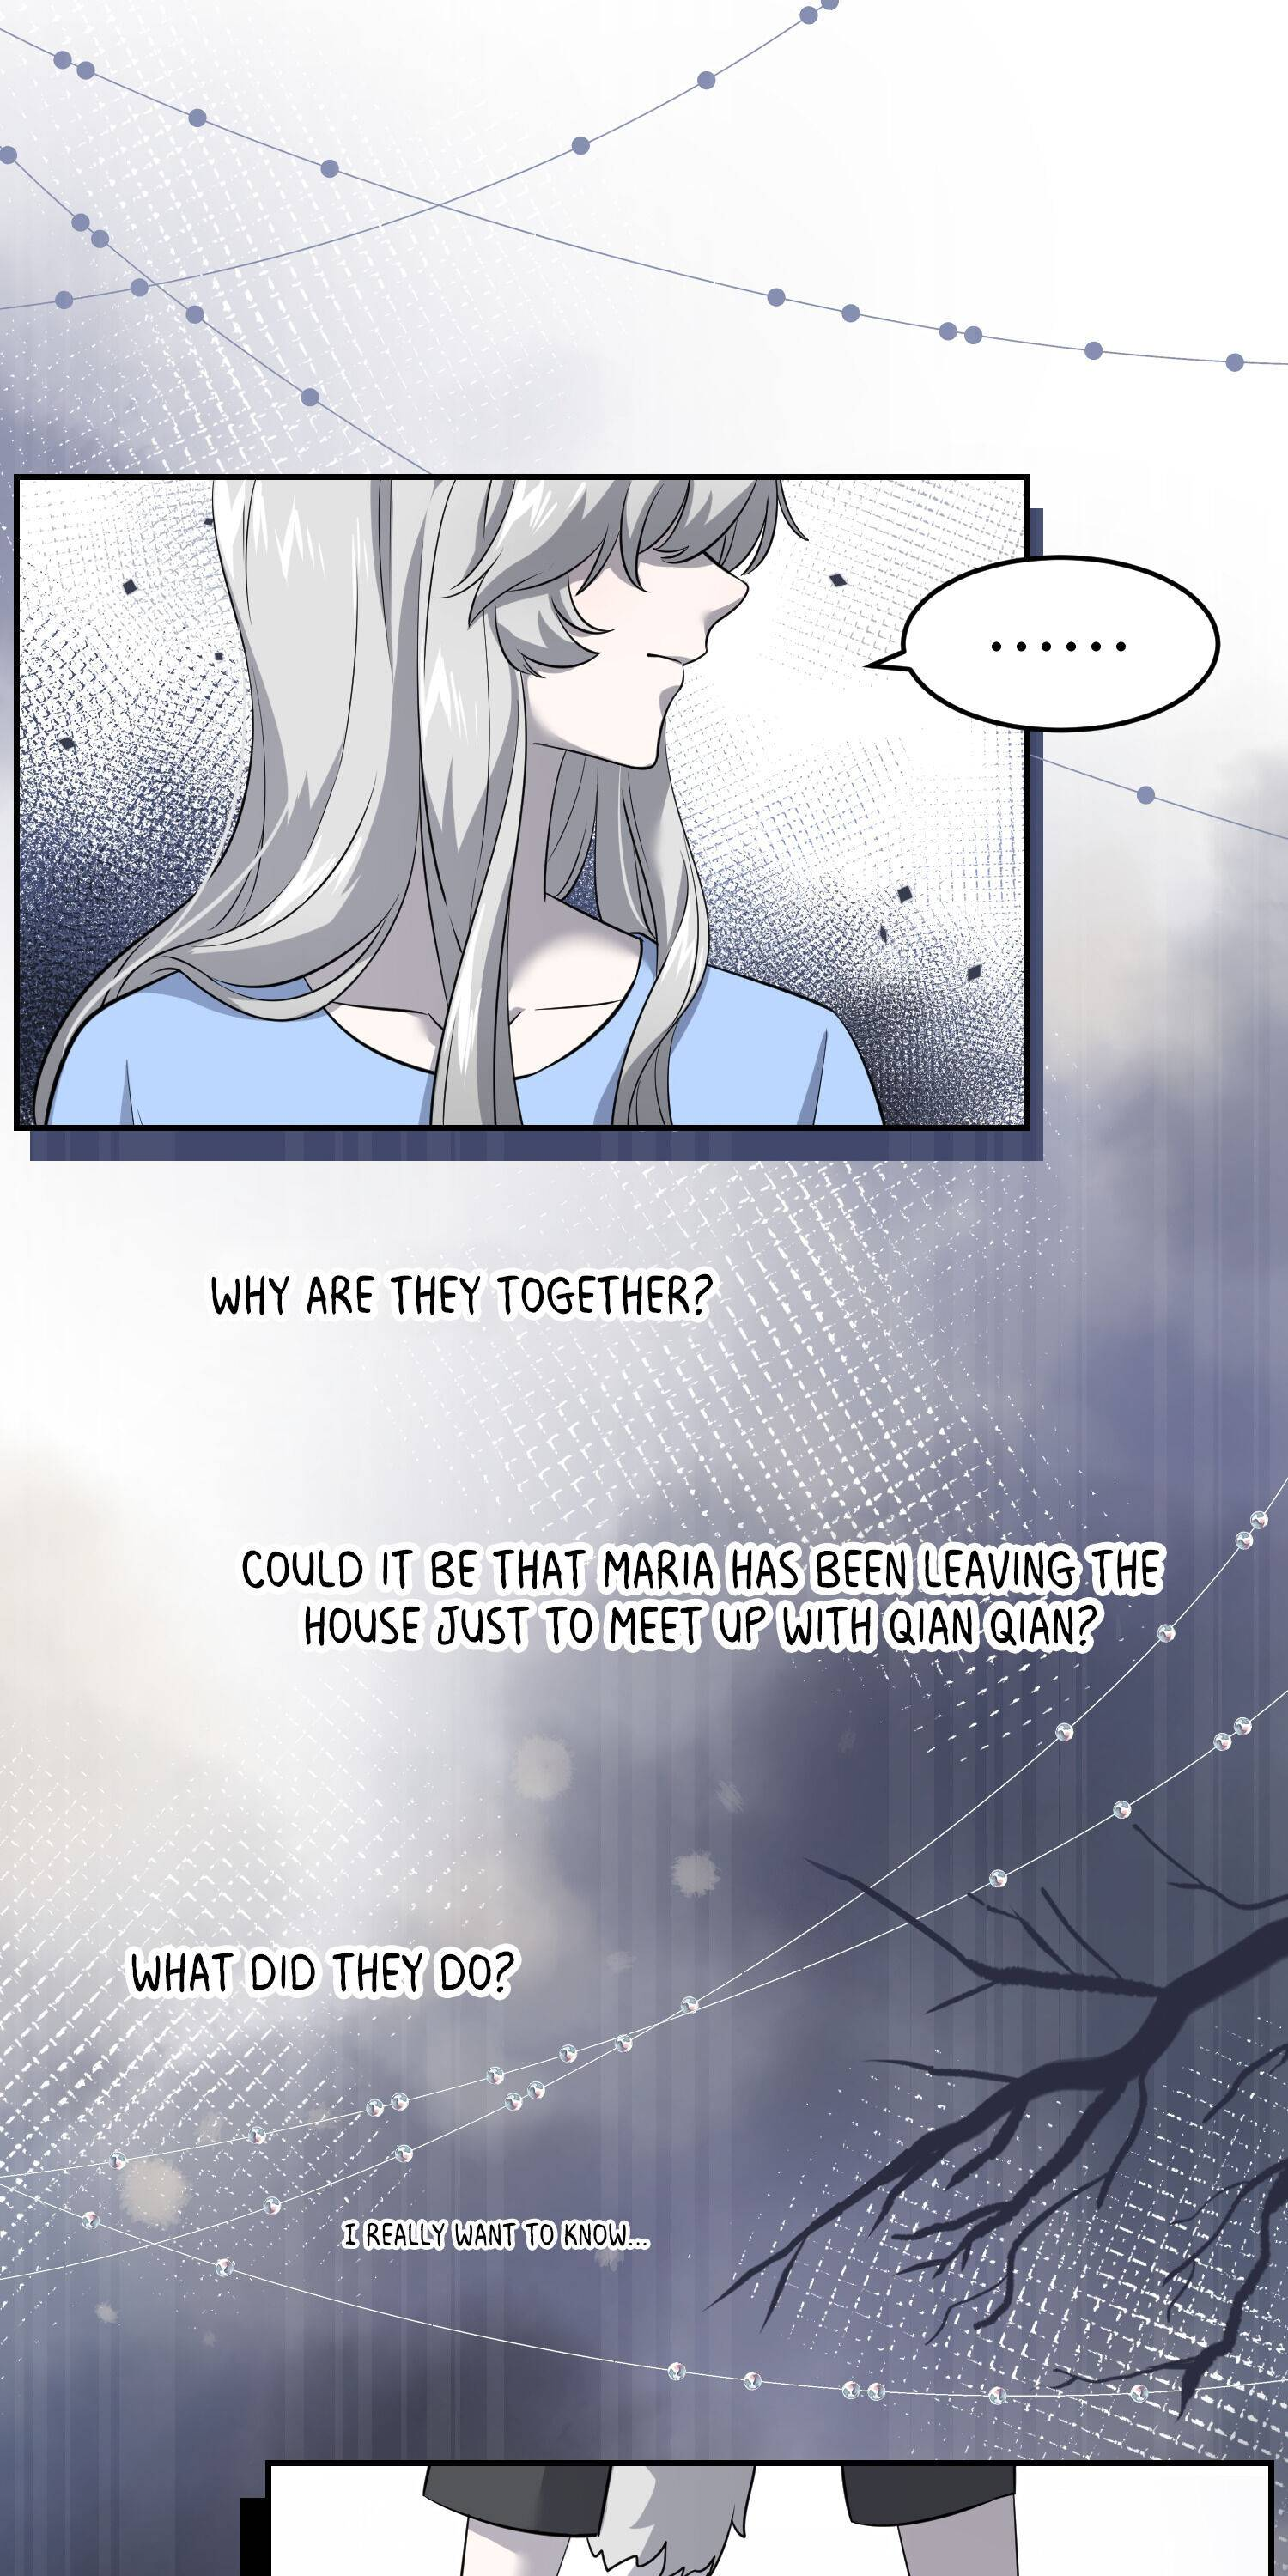 My Food Seems To Be Very Cute - chapter 17 - #2